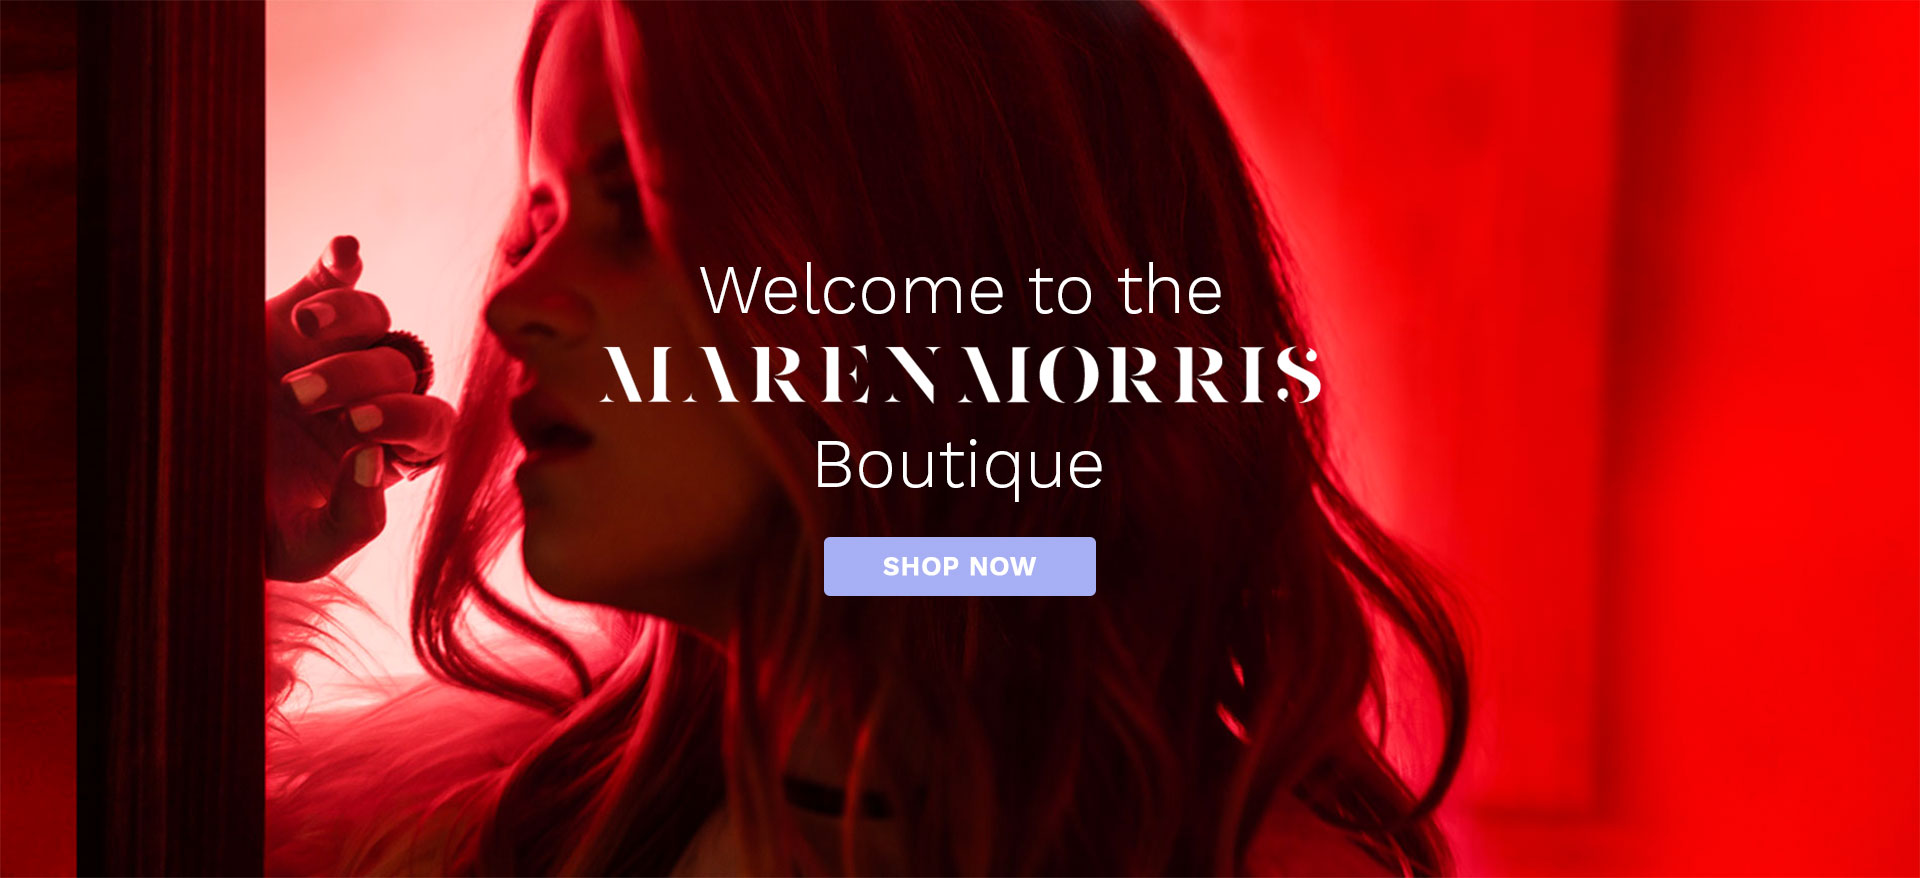 Welcome to the Maren Morris Boutique